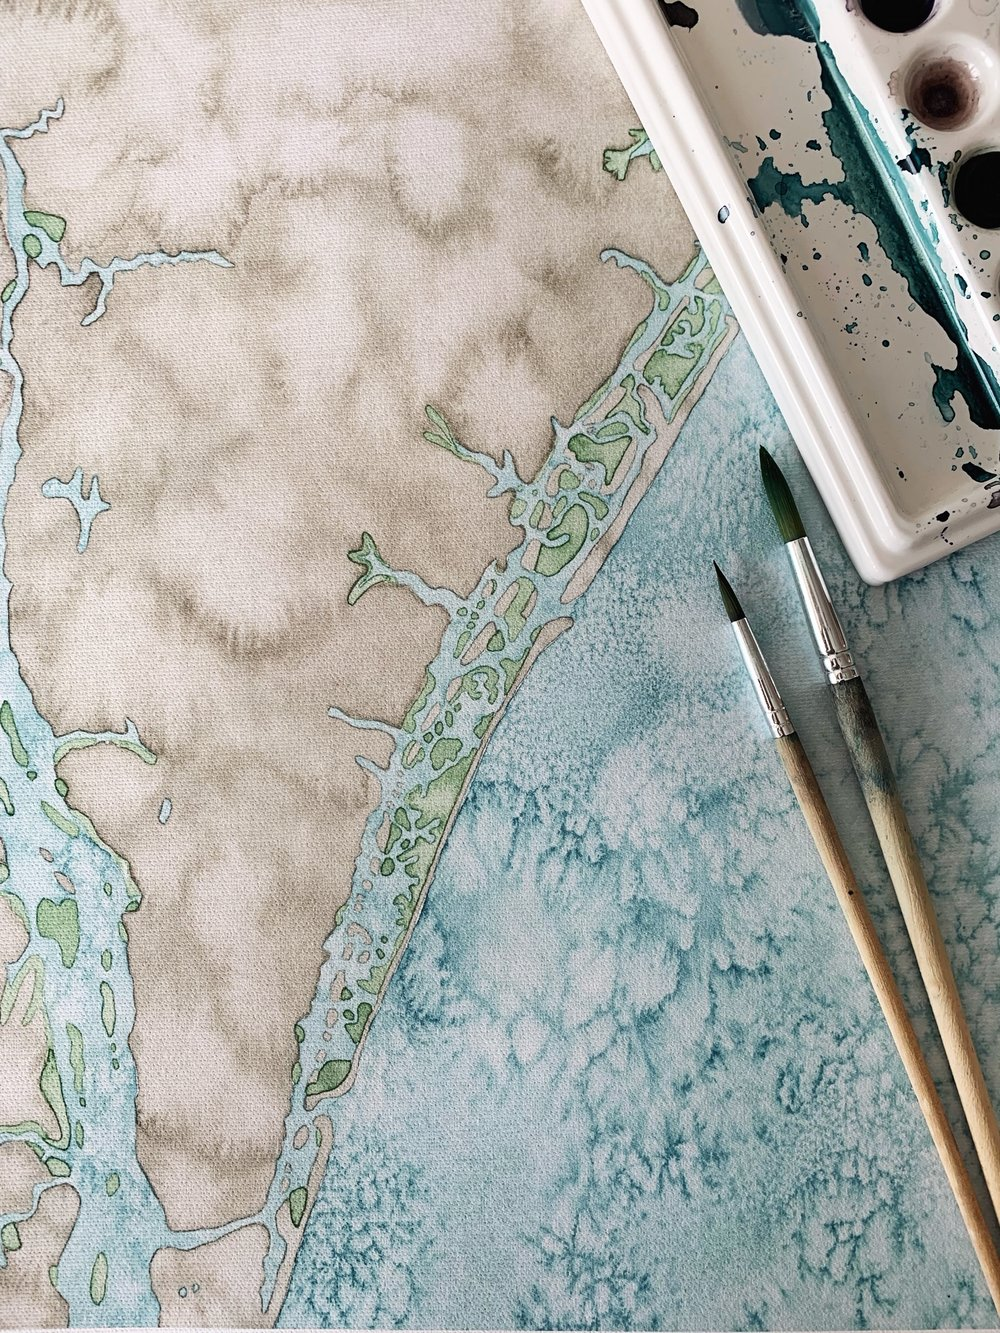 Coming soon… - New Coastal Art Map sizes, framing options & locations, all printed to order on an even more luxurious canvas.Subscribe to my email list at the bottom of the page to be notified when the new maps are available. Until then, shop existing maps on SALE!